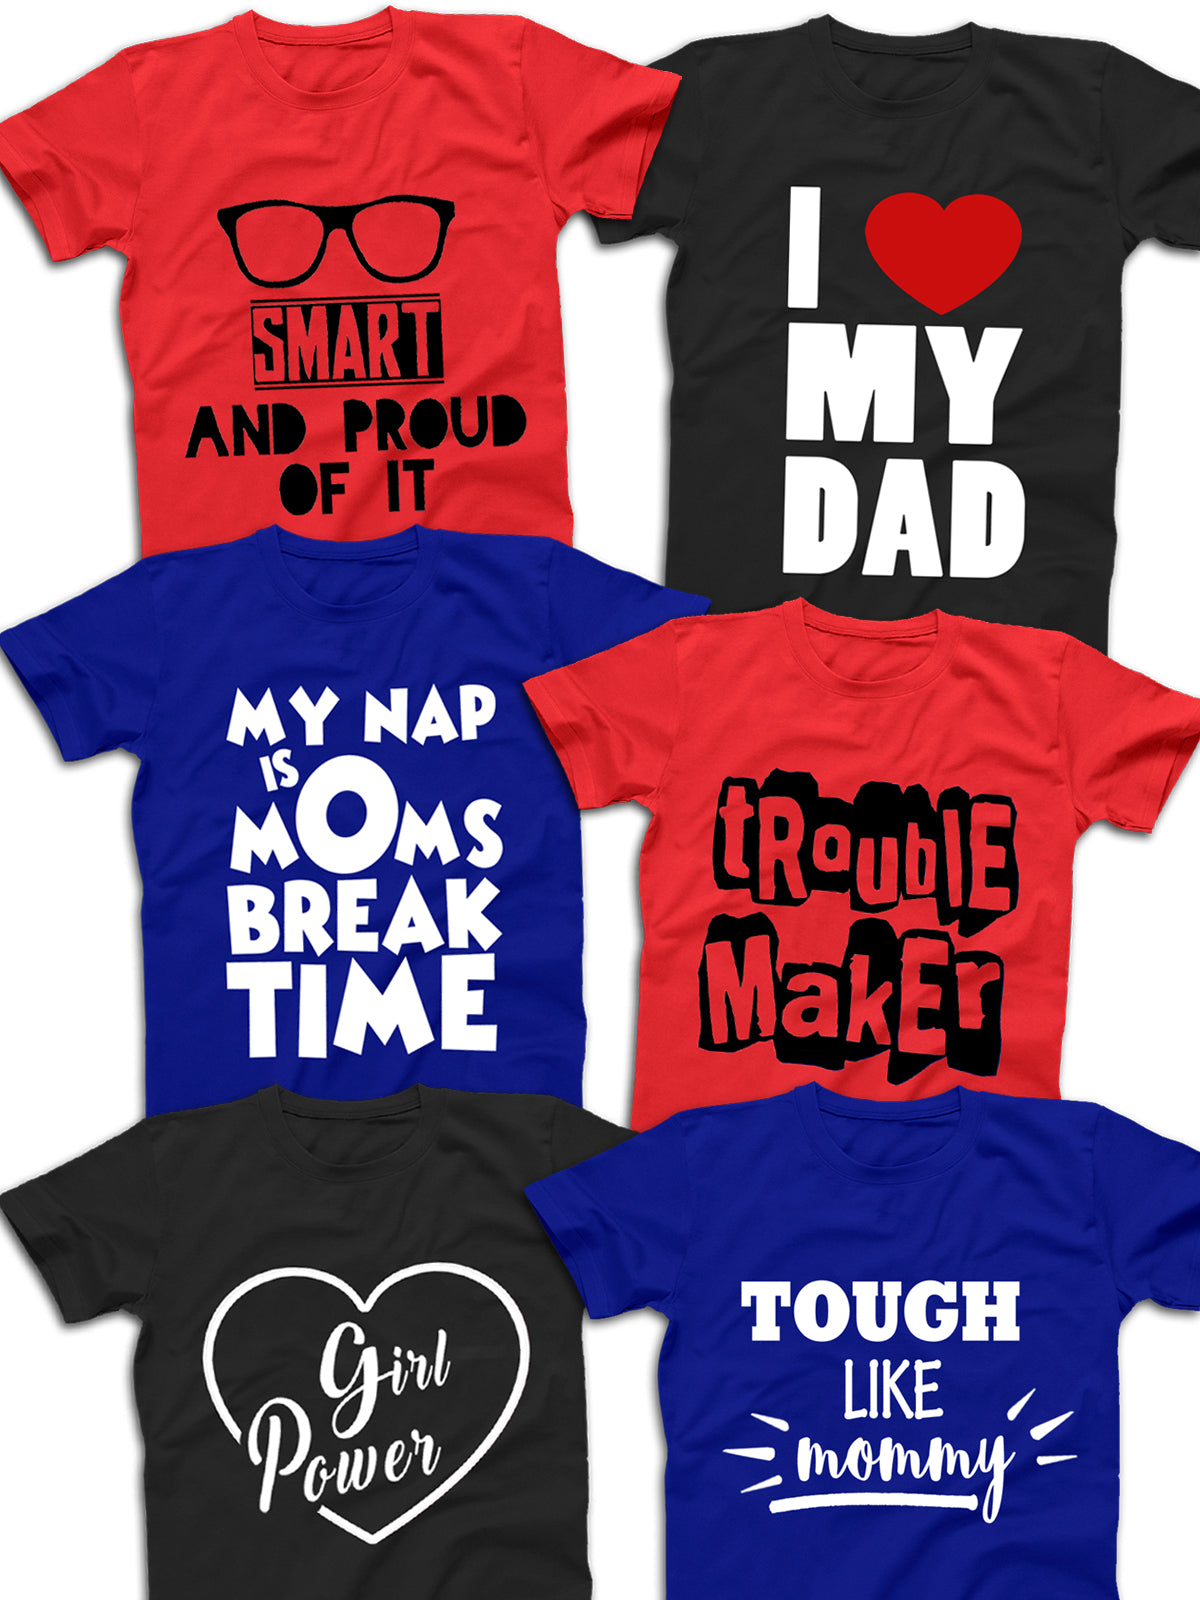 6 T-Shirts Combo for Kids (My Nap Girl Power I Love My Dad Trouble Maker Smart Tough Like Daddy) Stubborne